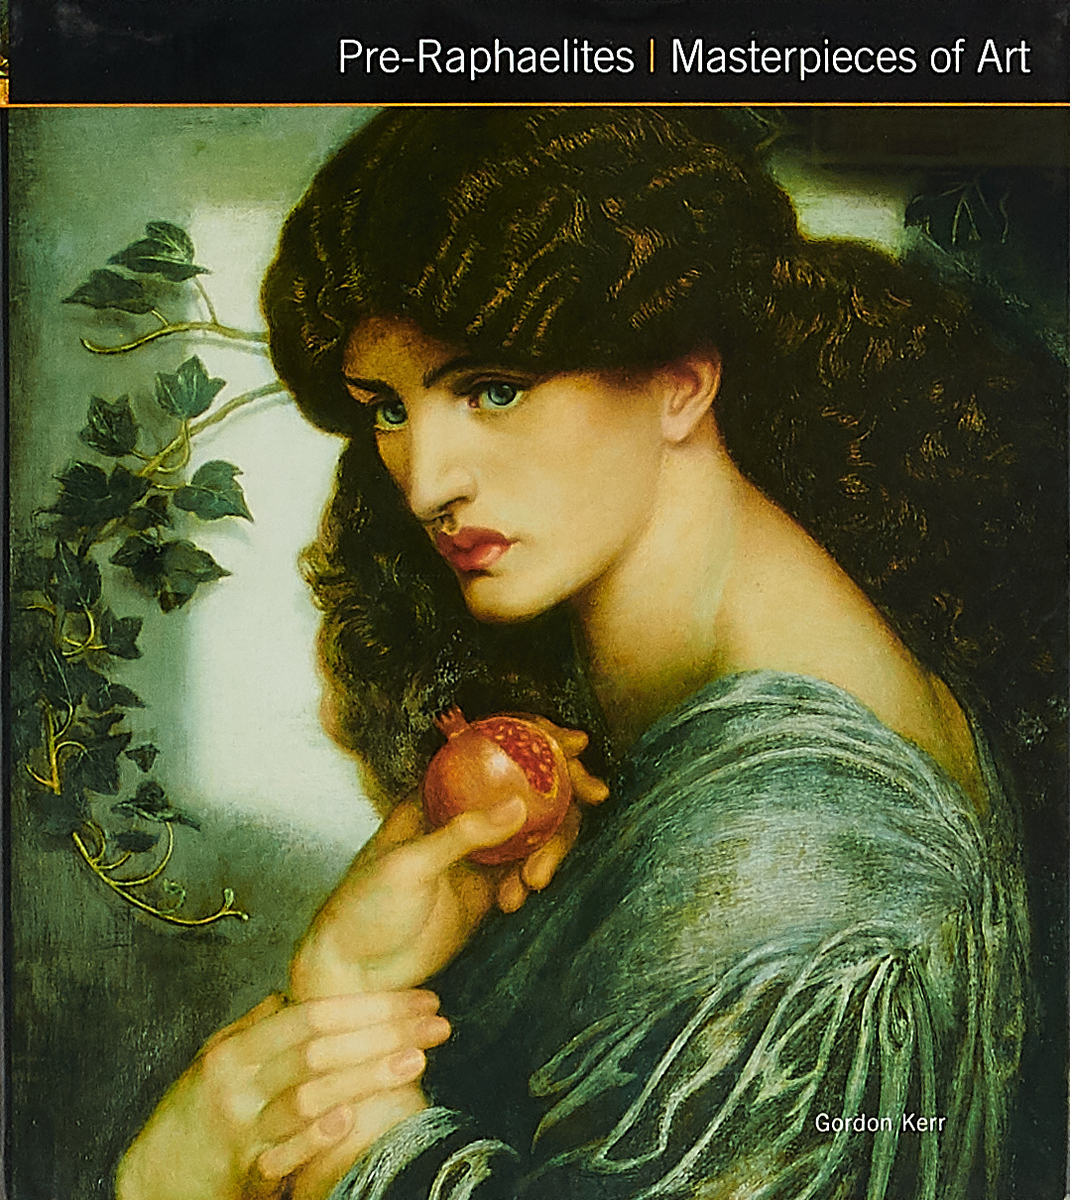 Pre-Raphaelites(Masterpieces of Art Series) o connor patrick practical reliability engineering